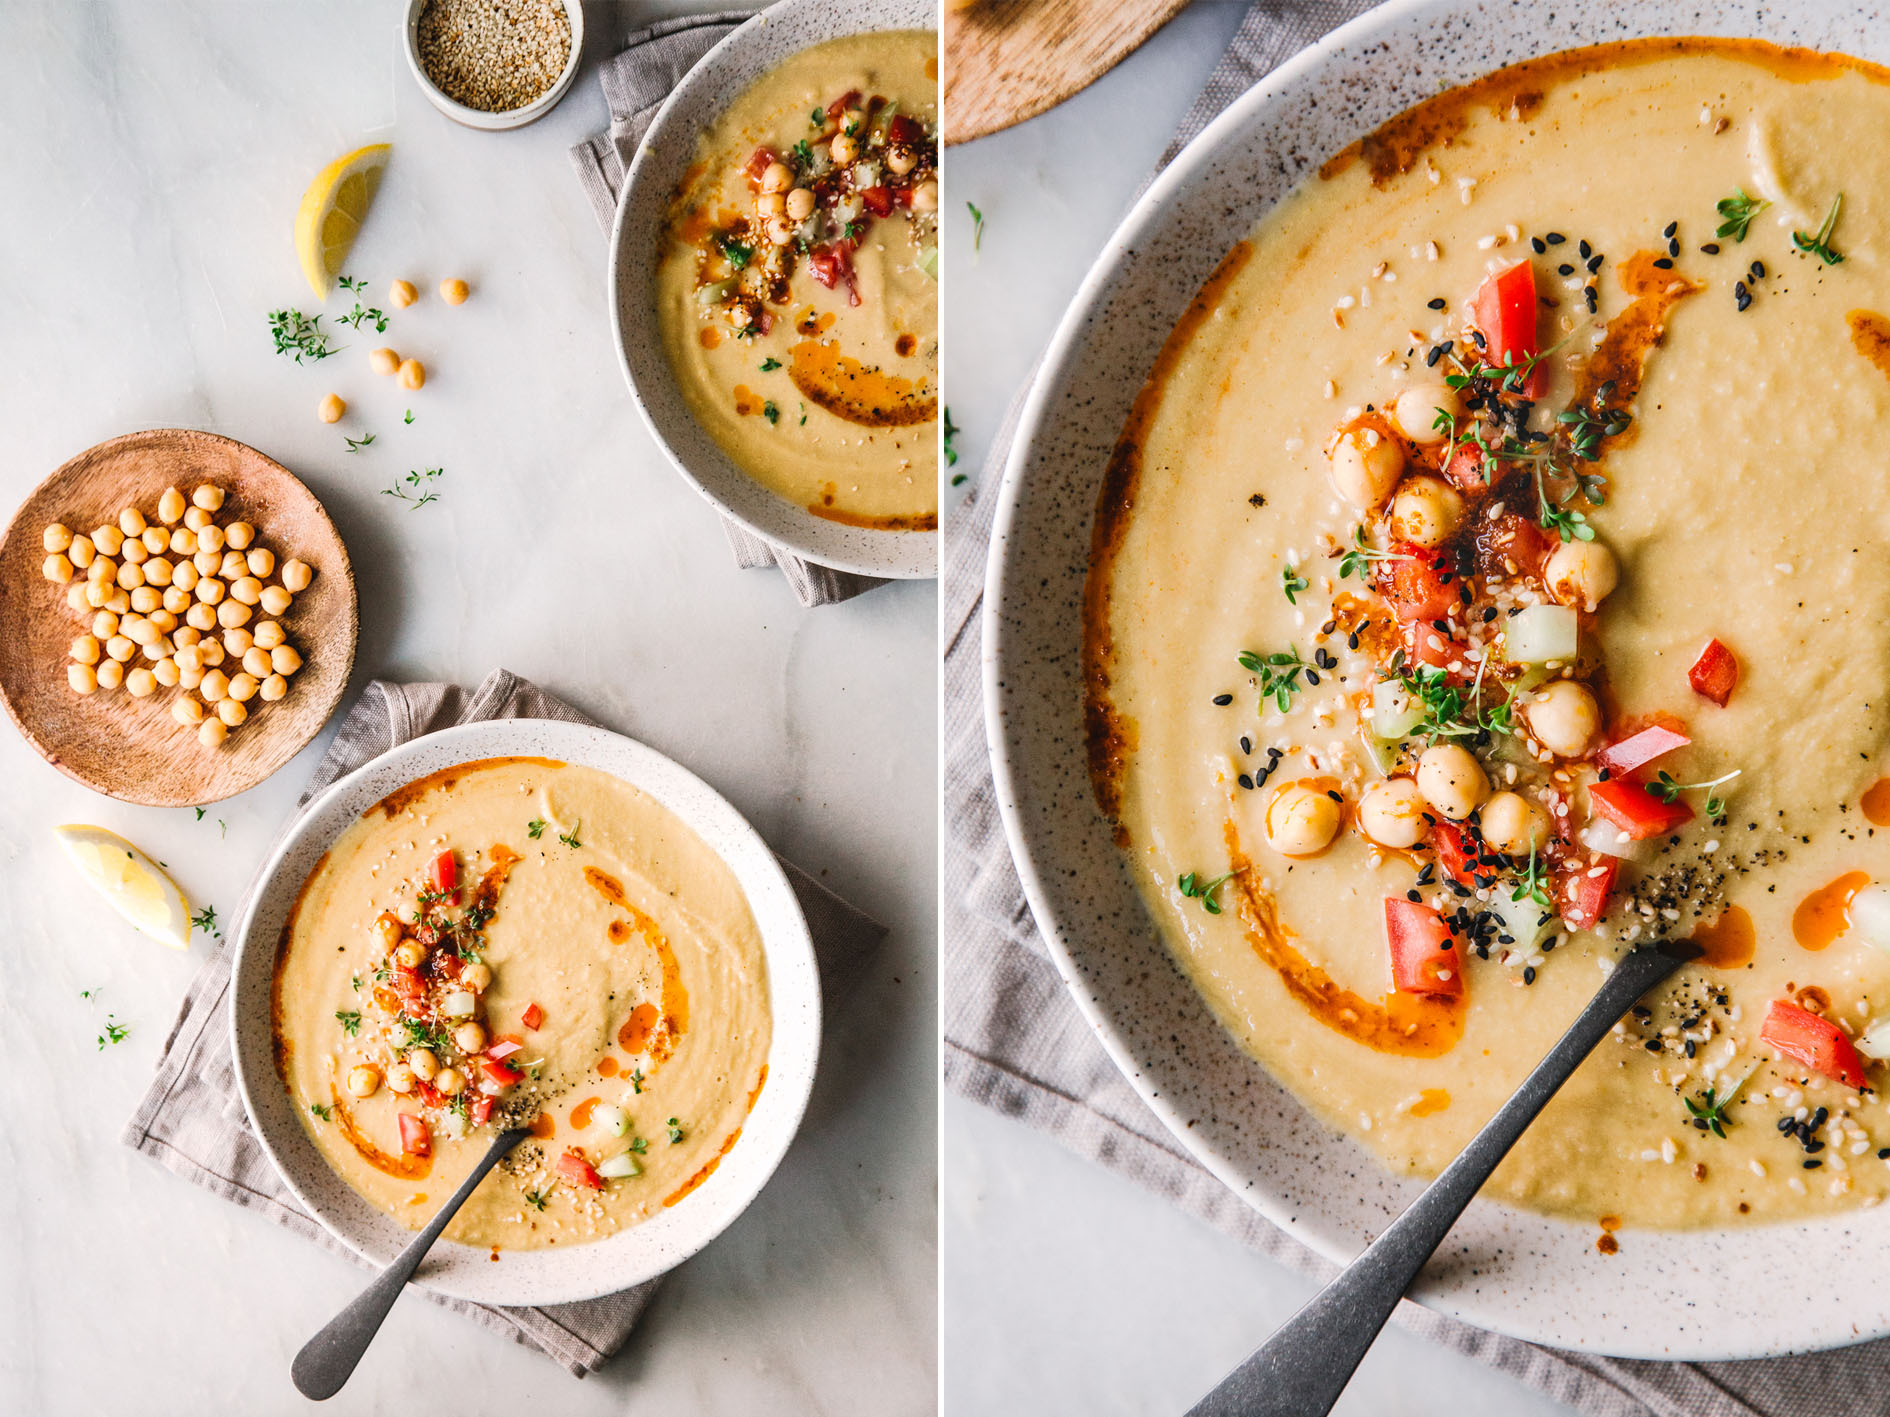 Hummus Suppe mit Toppings